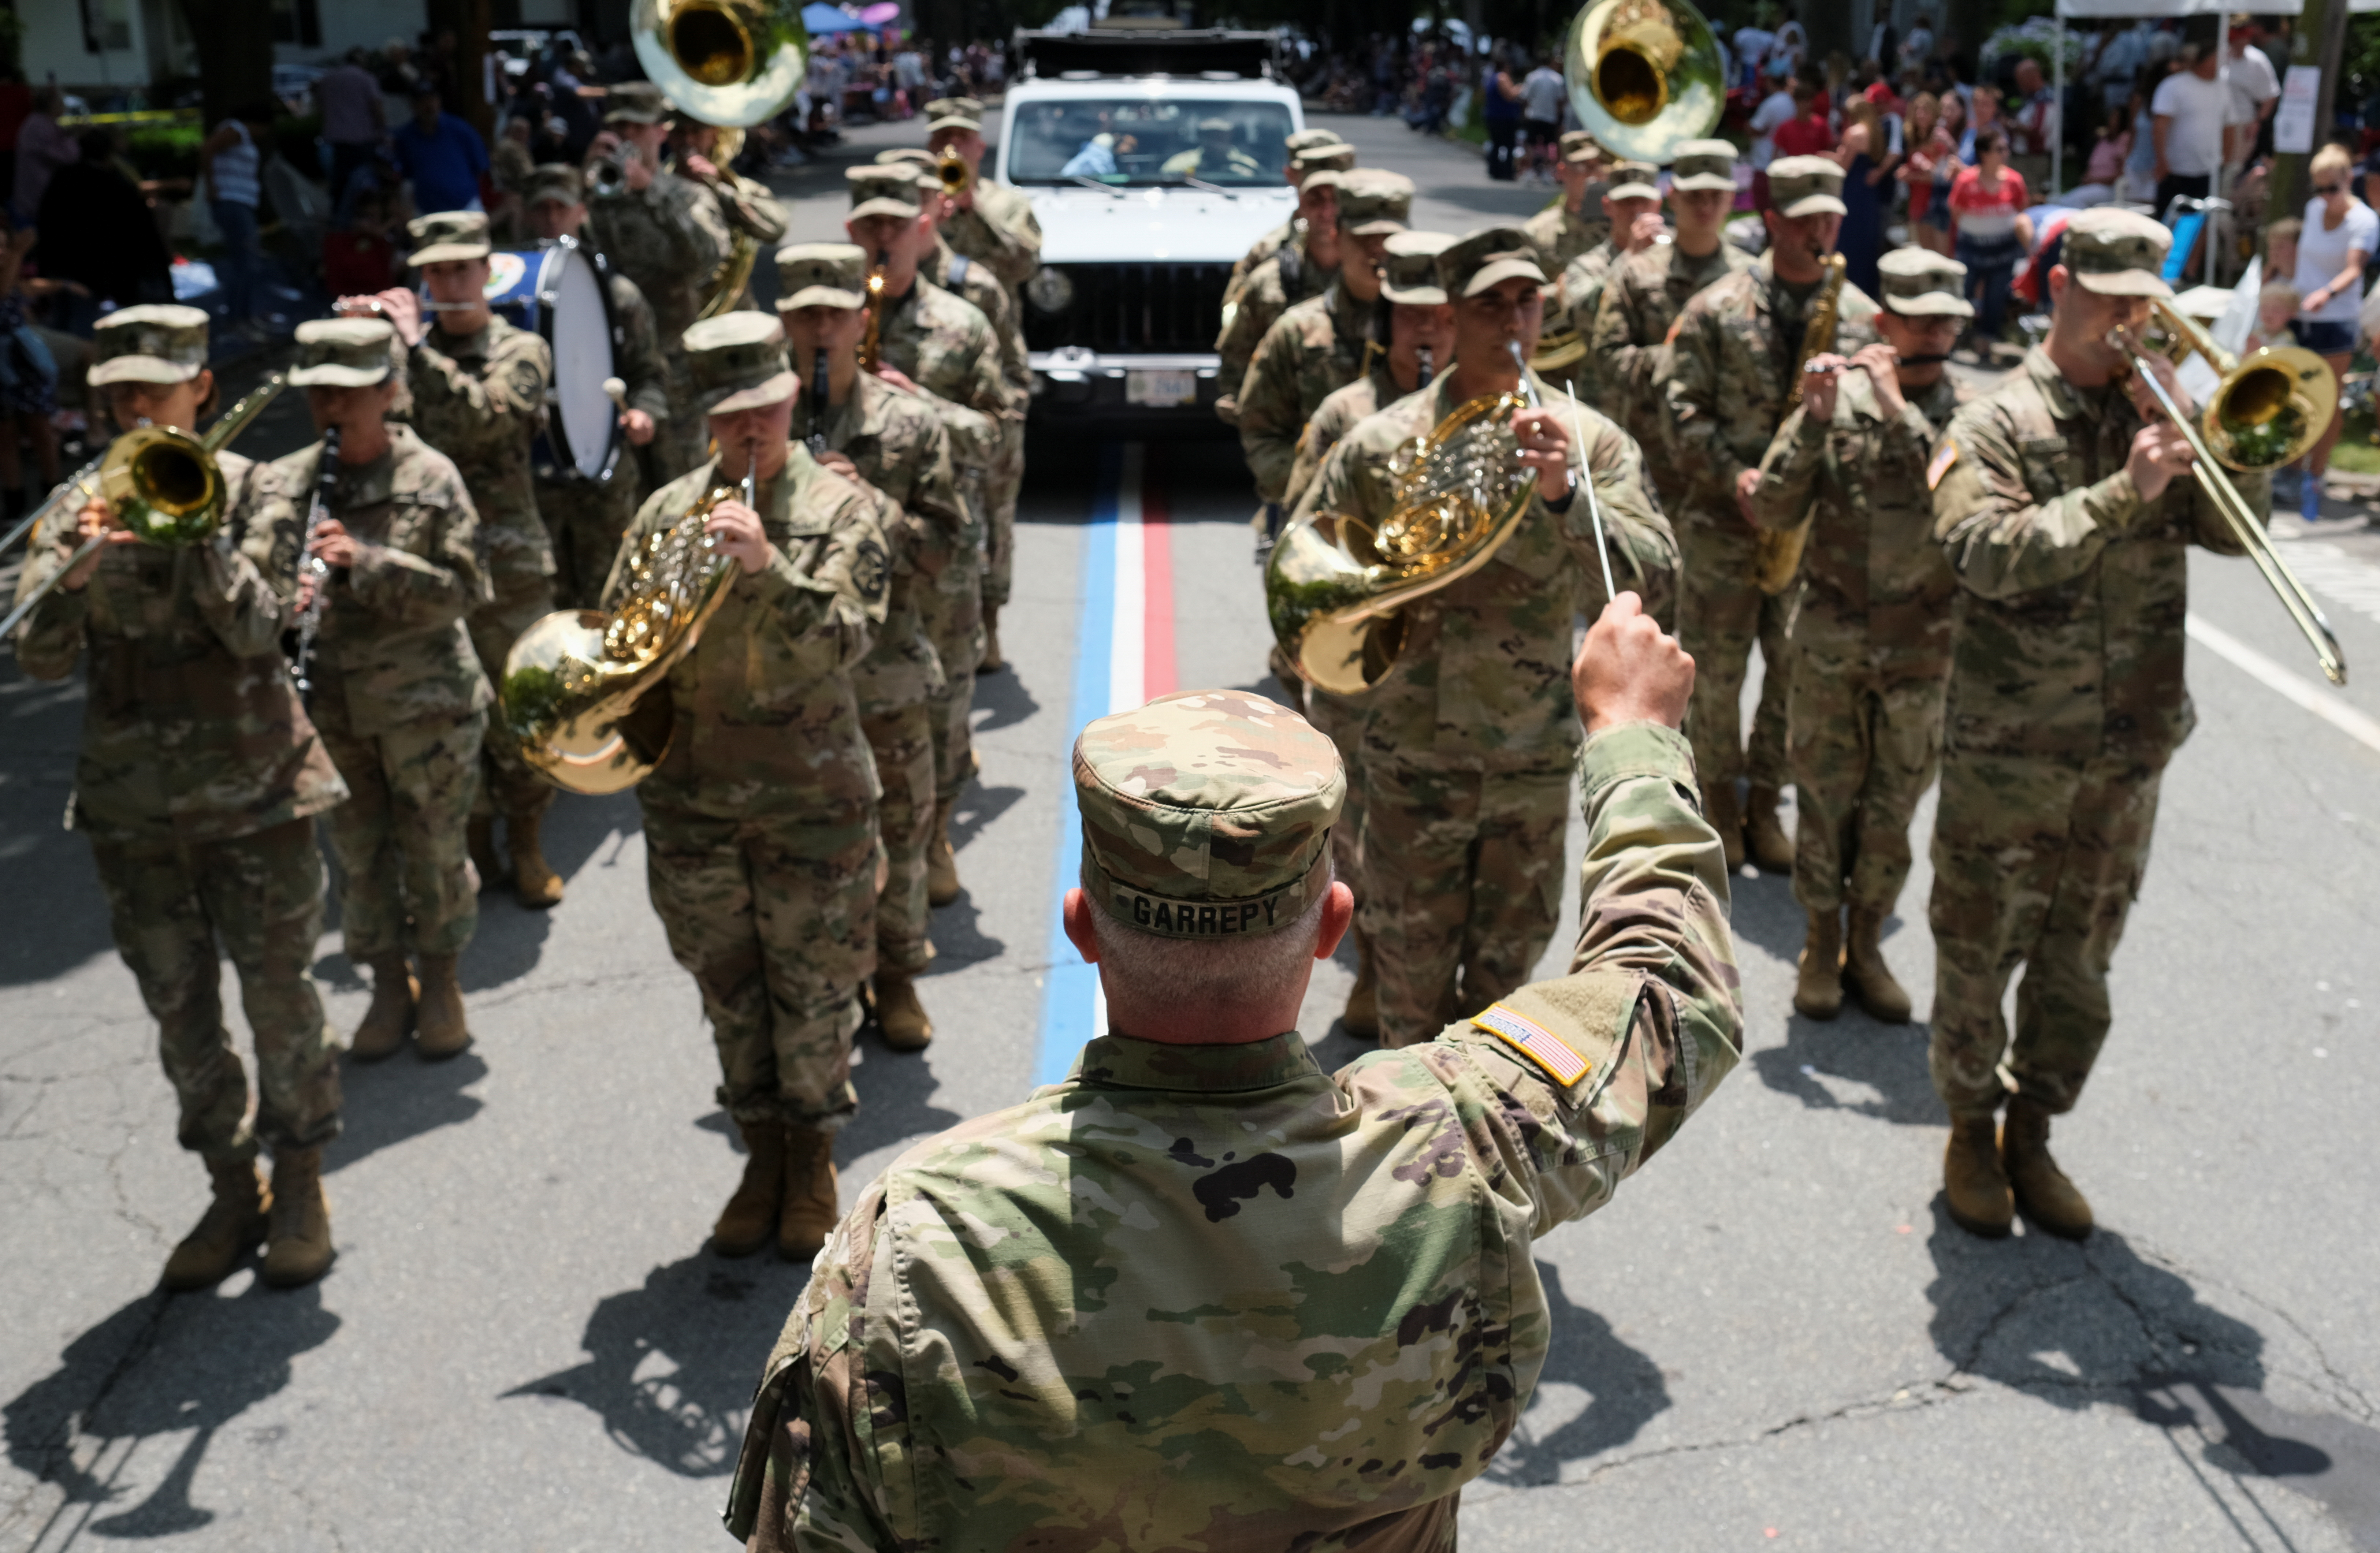 A Military bands perform during the 236th annual Military, Civic, and Firemen's Parade as part of 4th of July celebrations in Bristol, Rhode Island, U.S., July 5, 2021.  REUTERS/Quinn Glabicki